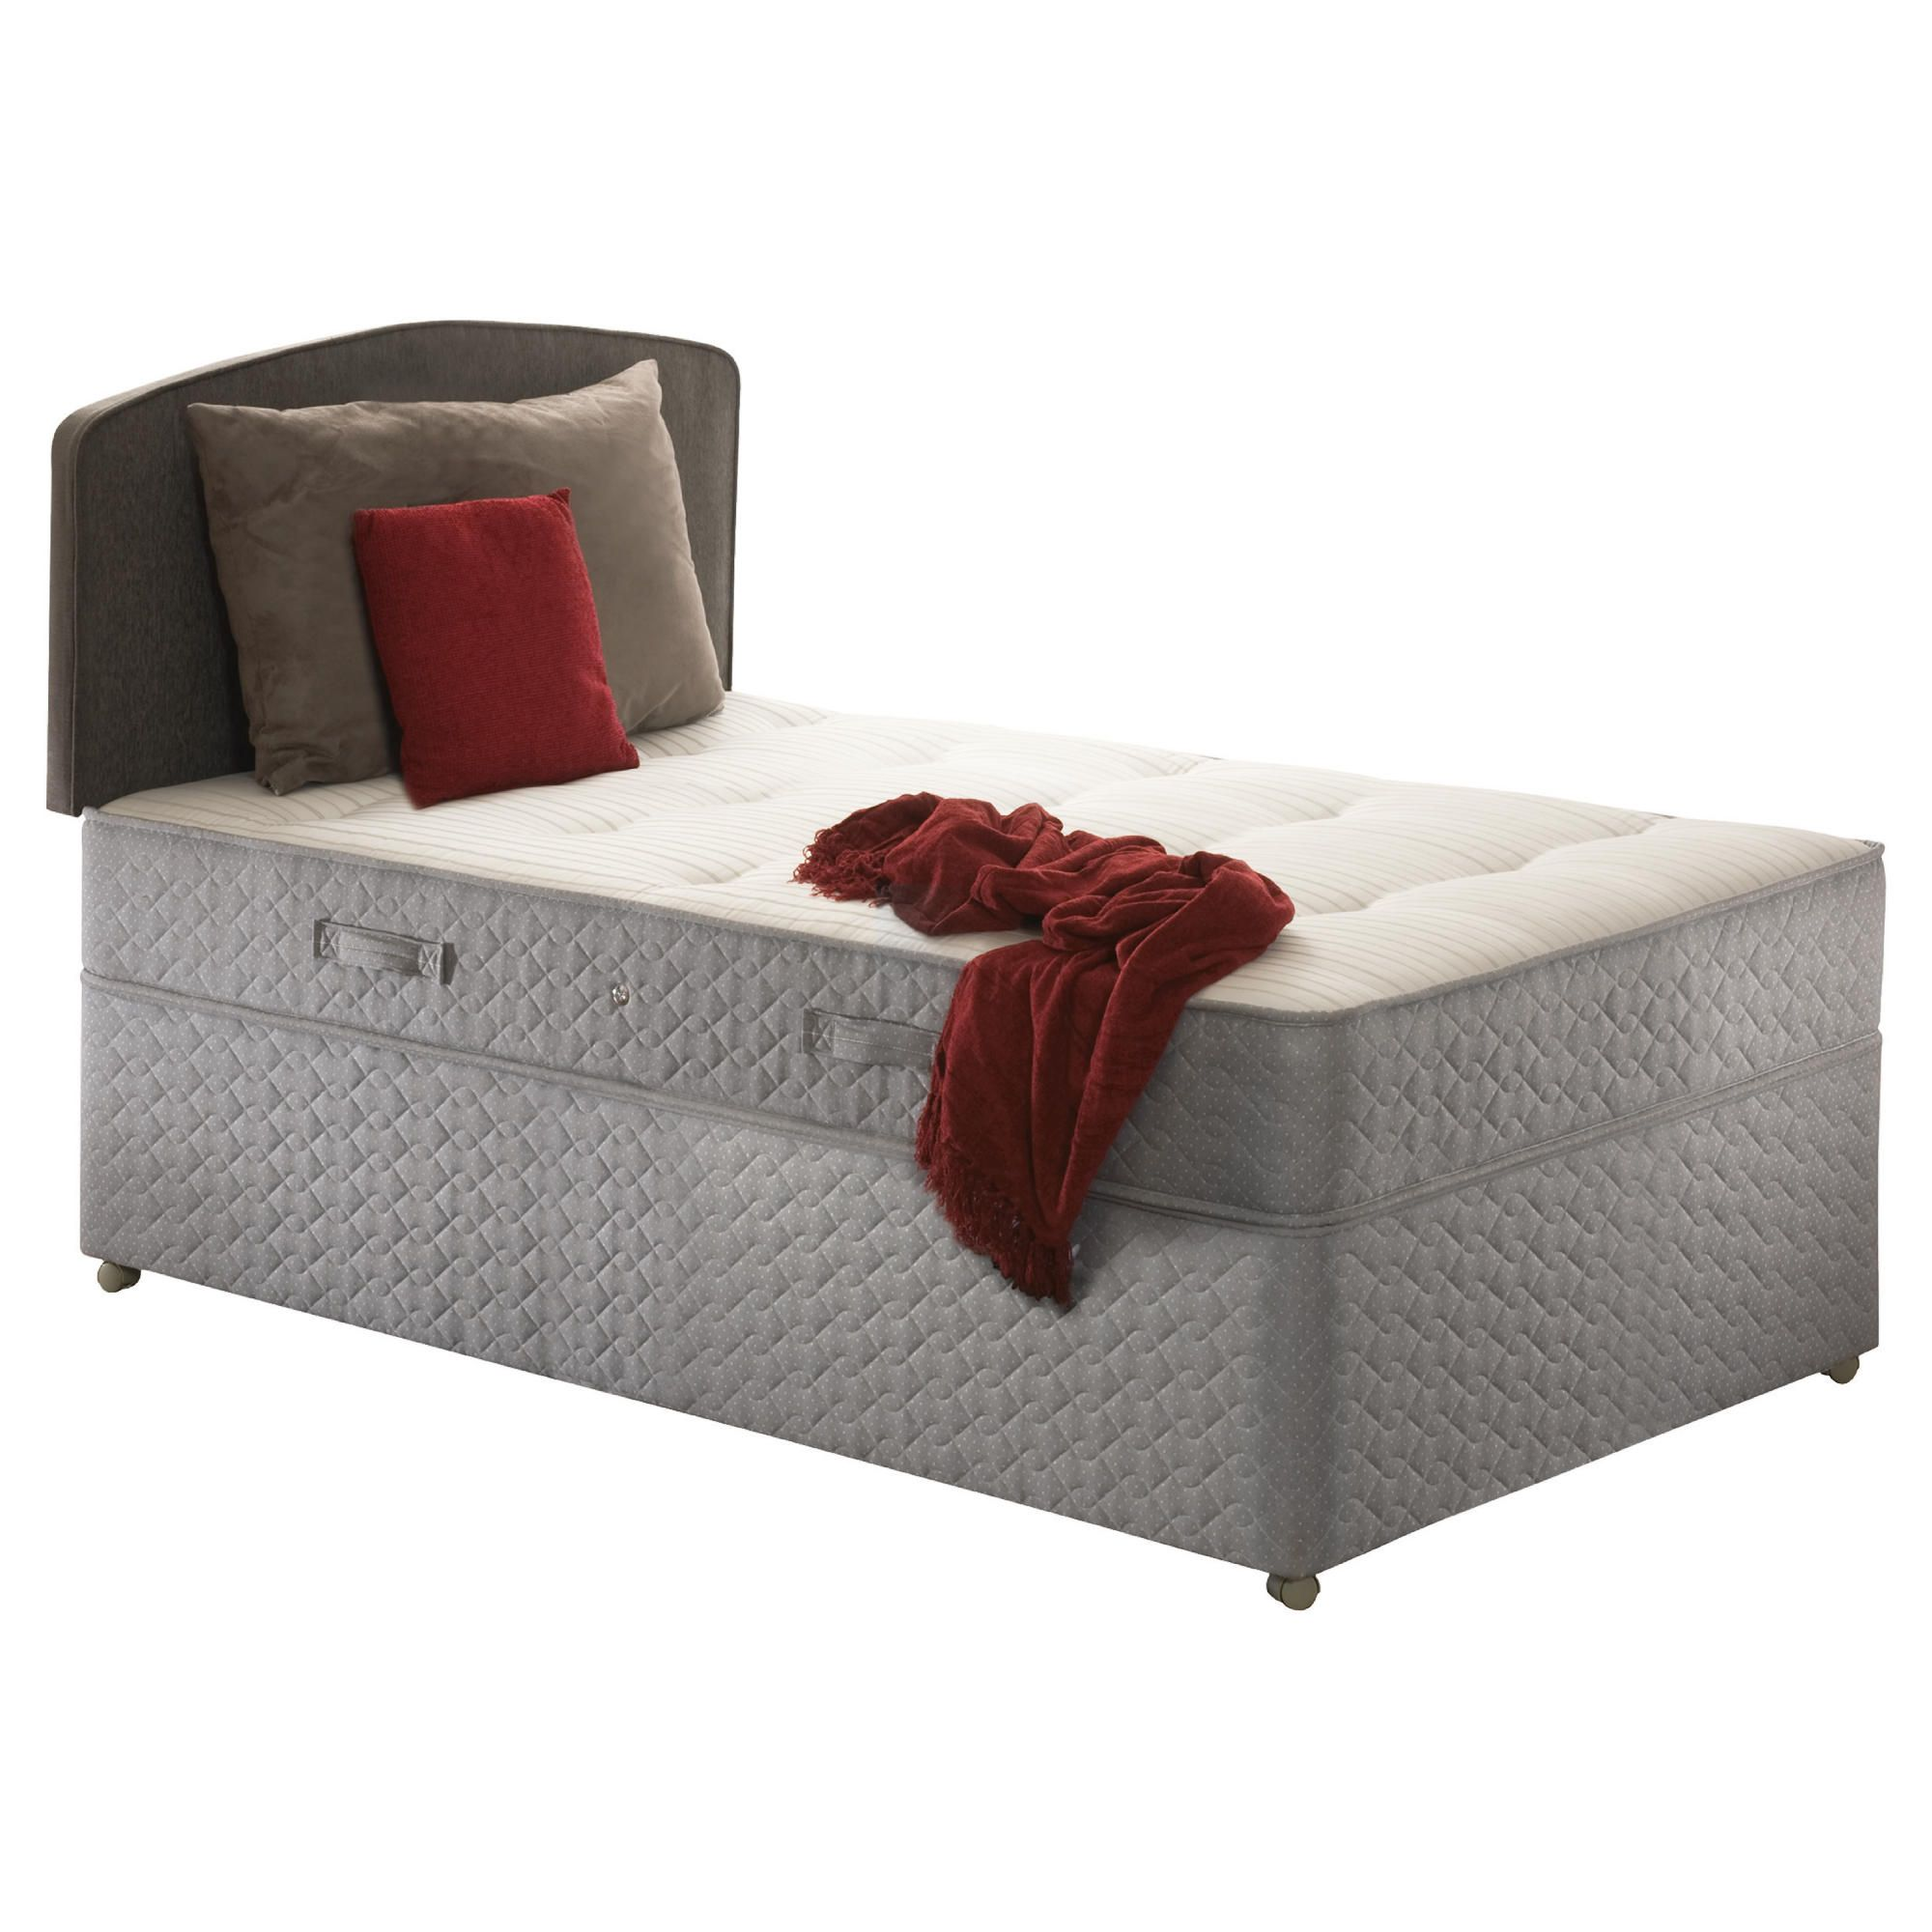 Sealy Posturepedic Ortho Backcare Plus Single Non Storage Divan Bed at Tesco Direct